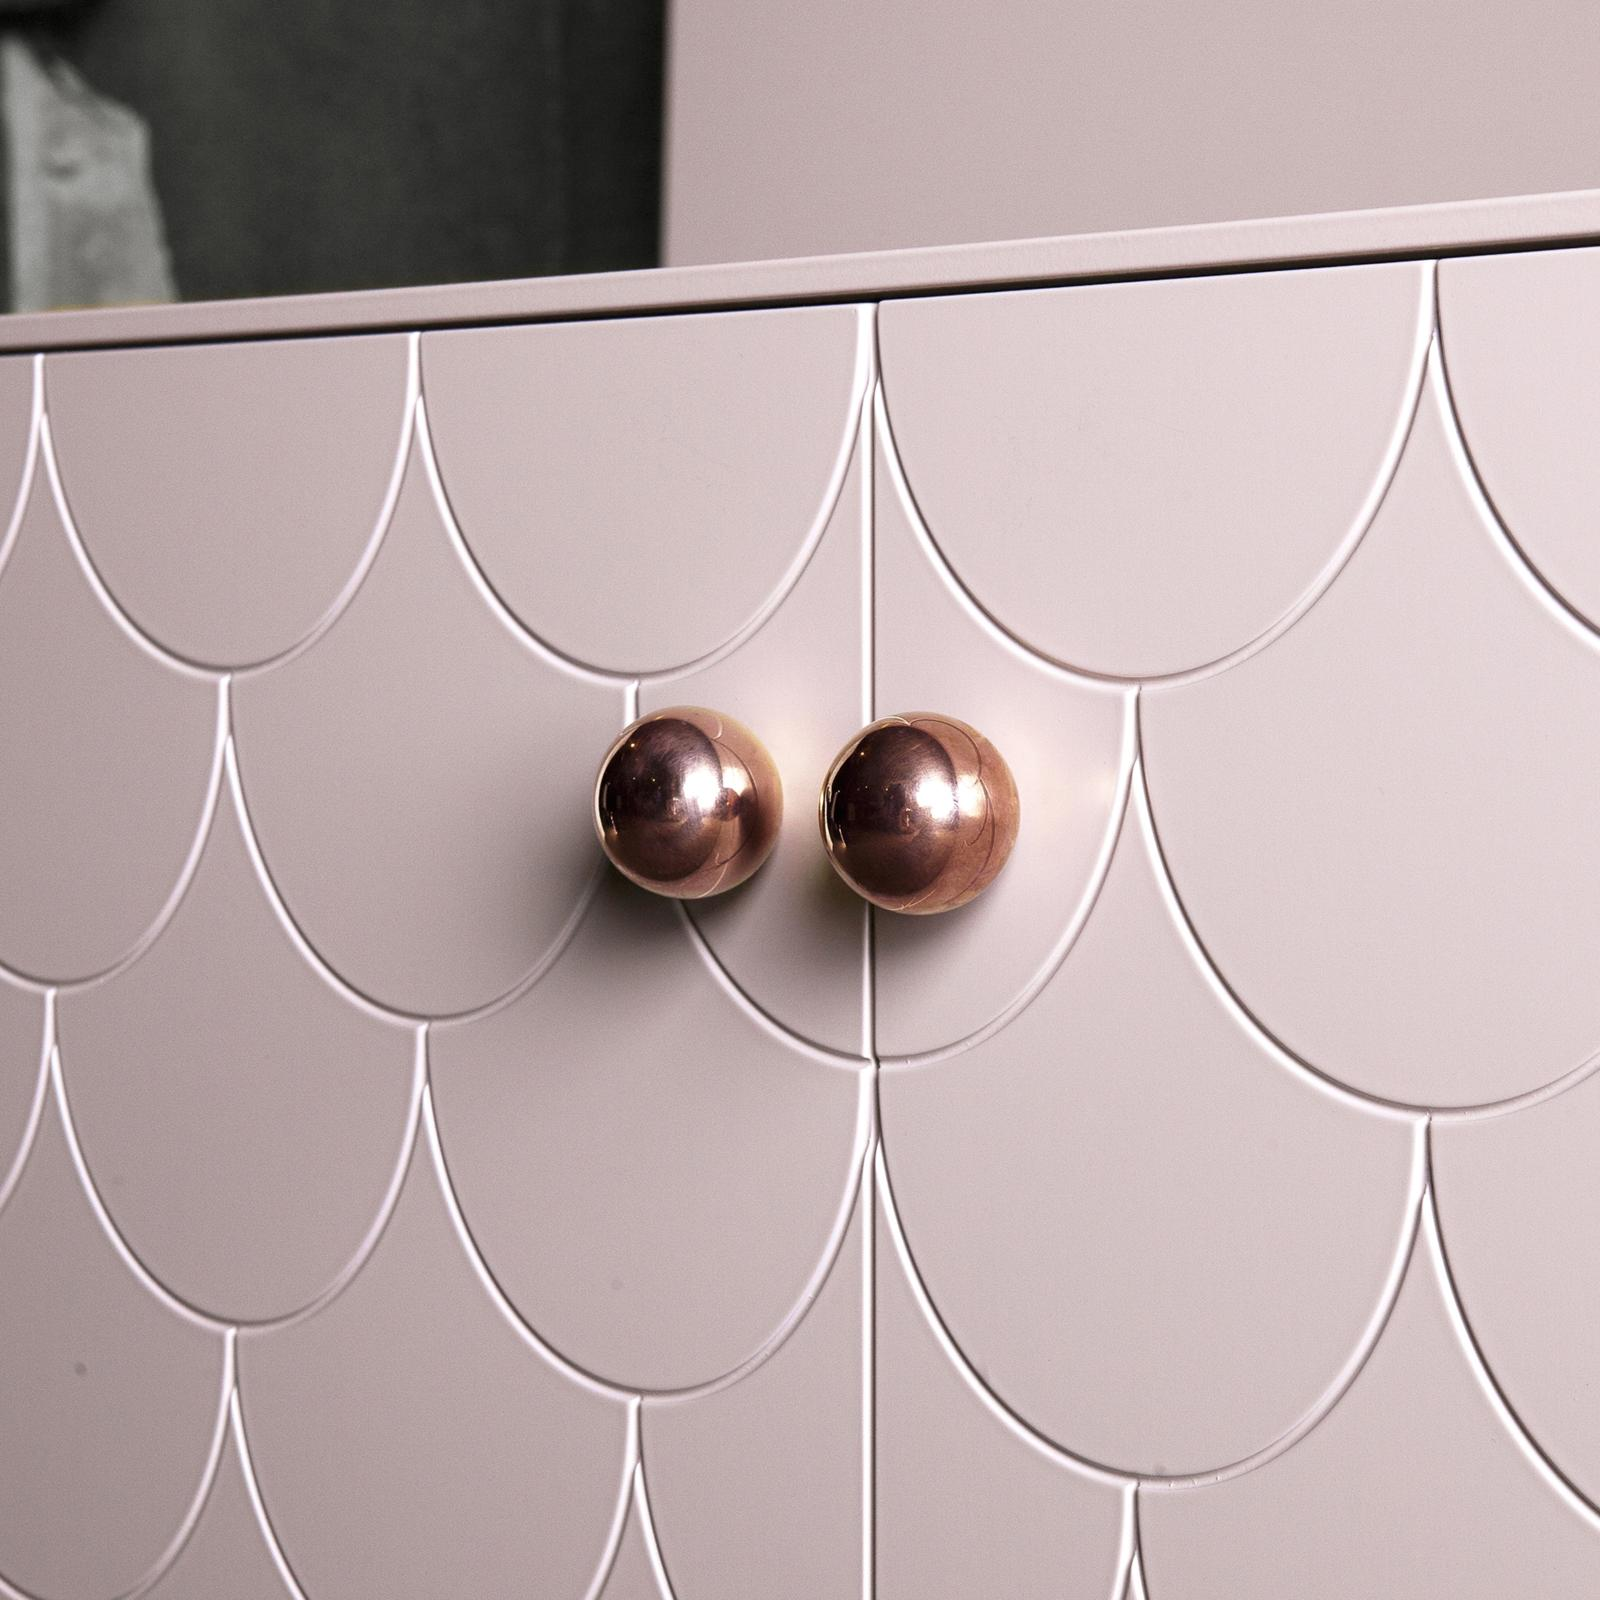 Handle in copper on a pink sideboard with a pattern that resembles fish scales